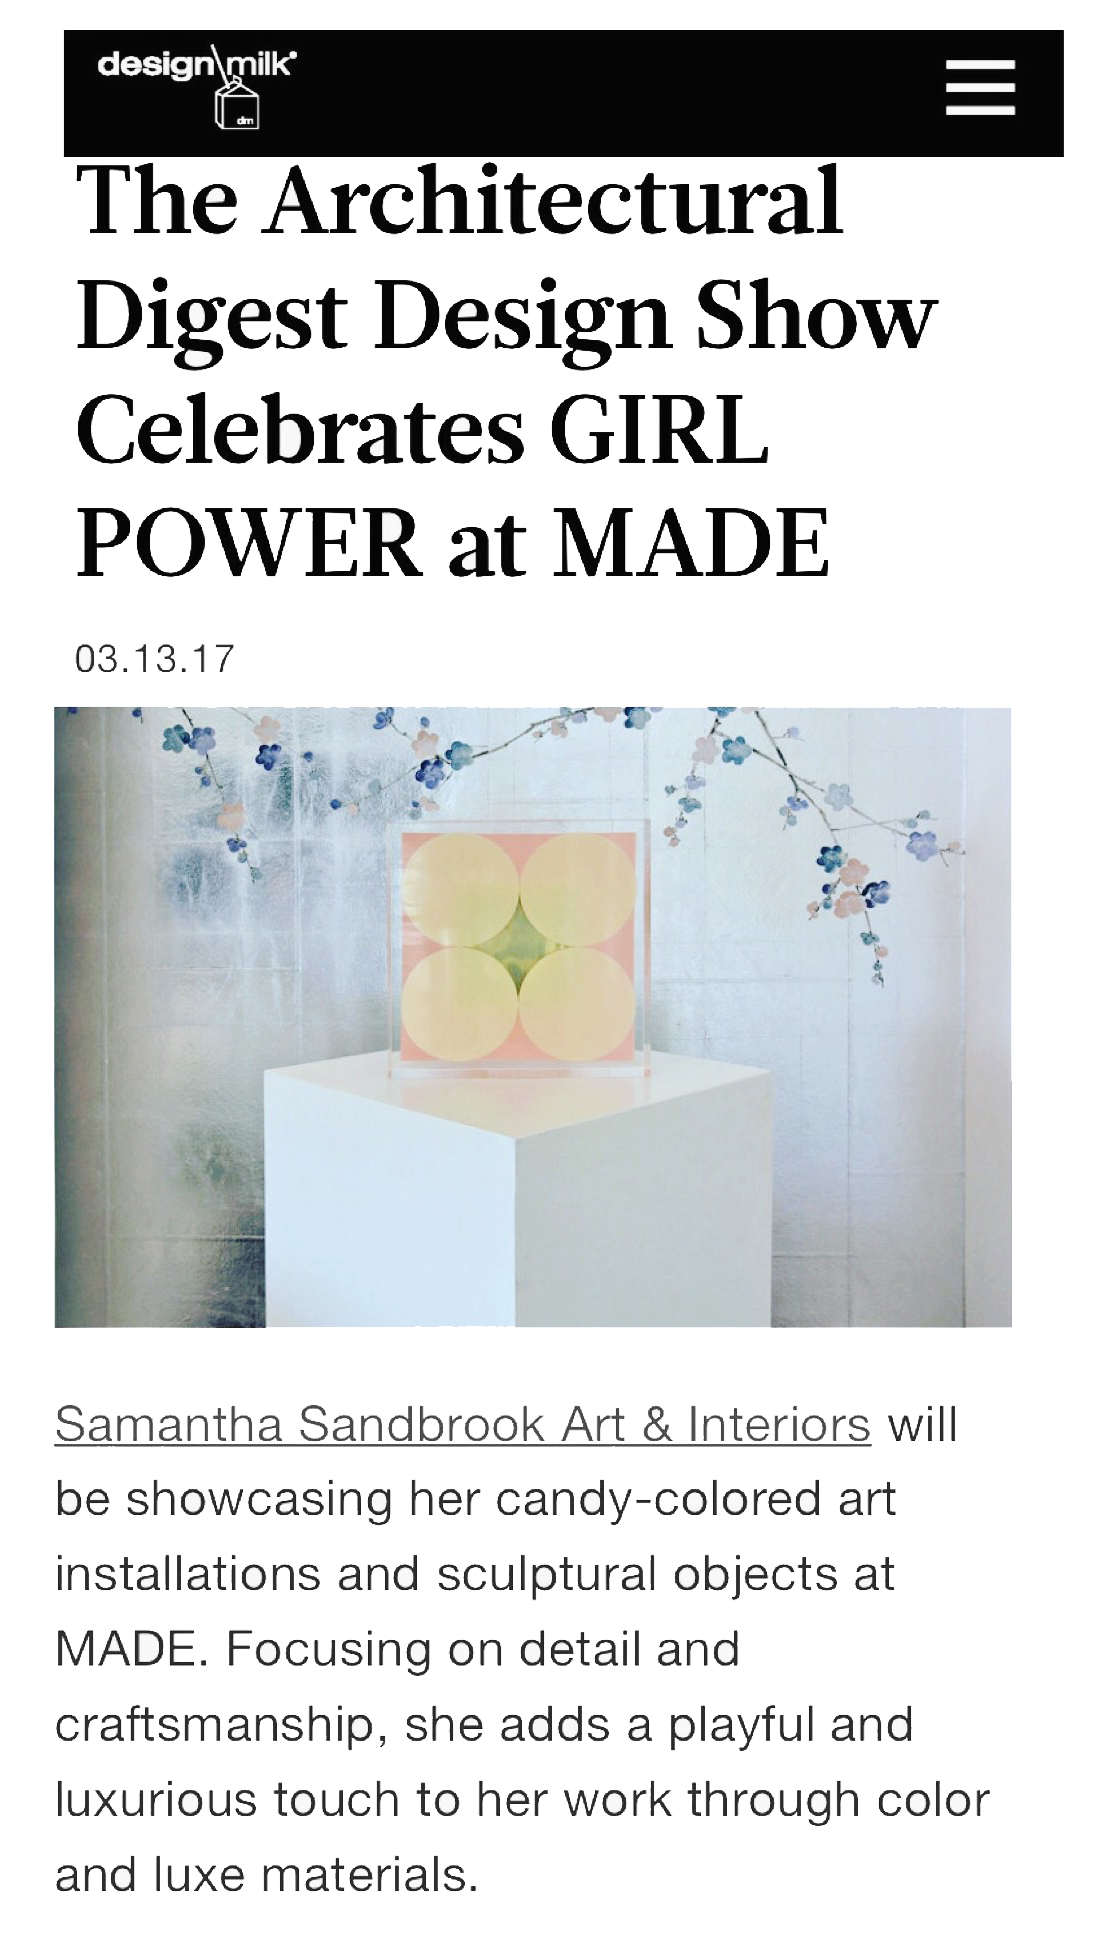 Design Milk, The Architectural Digest Design Show Celebrates GIRL POWER at MADE, NYC